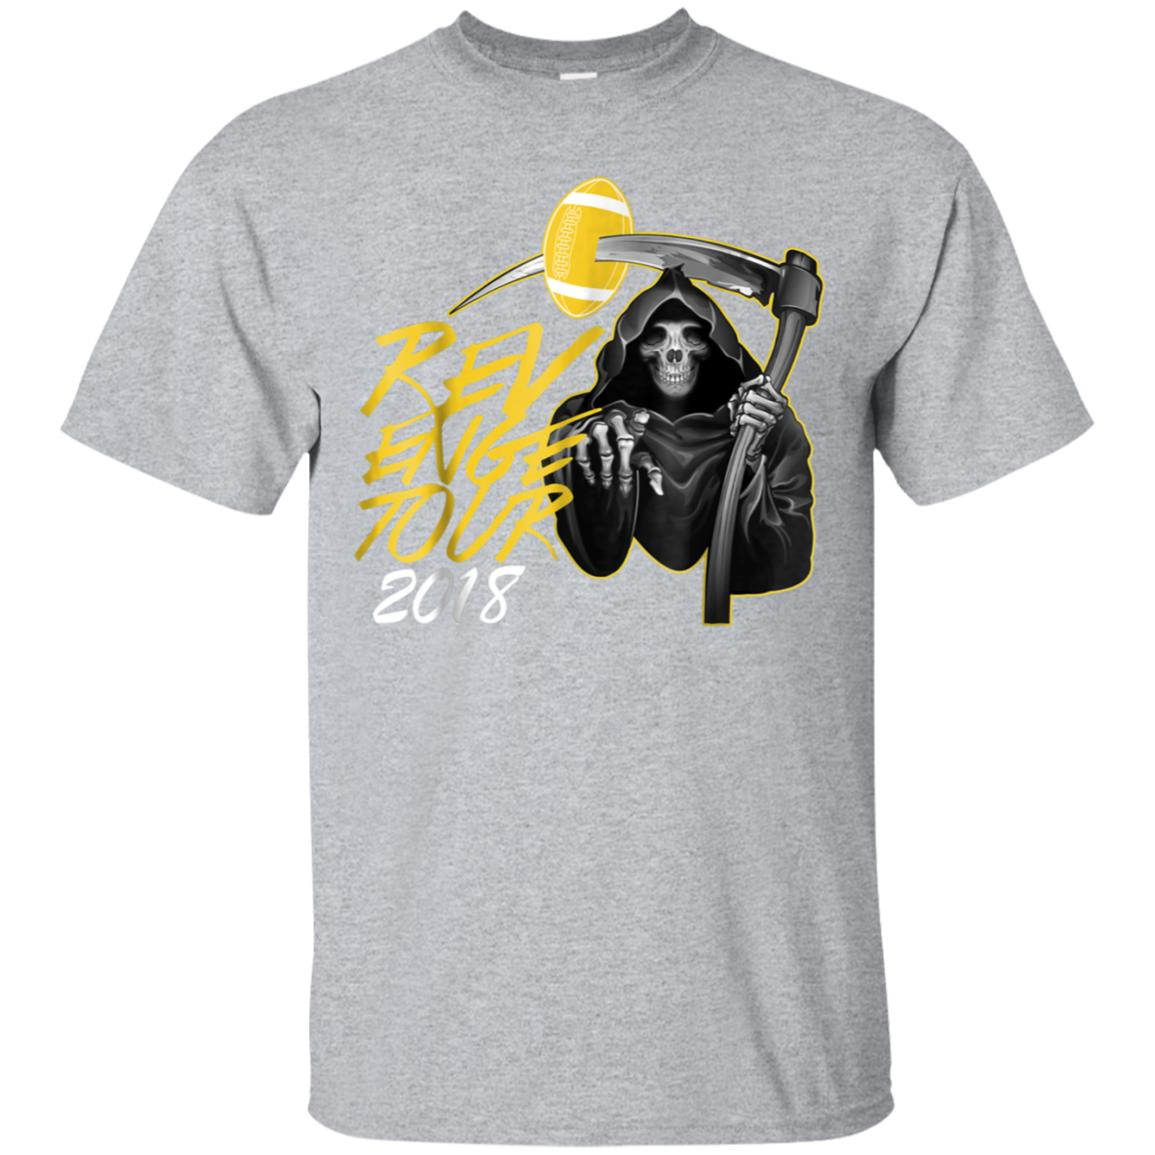 Michigan Revenge tour 2018 t-shirt 99promocode